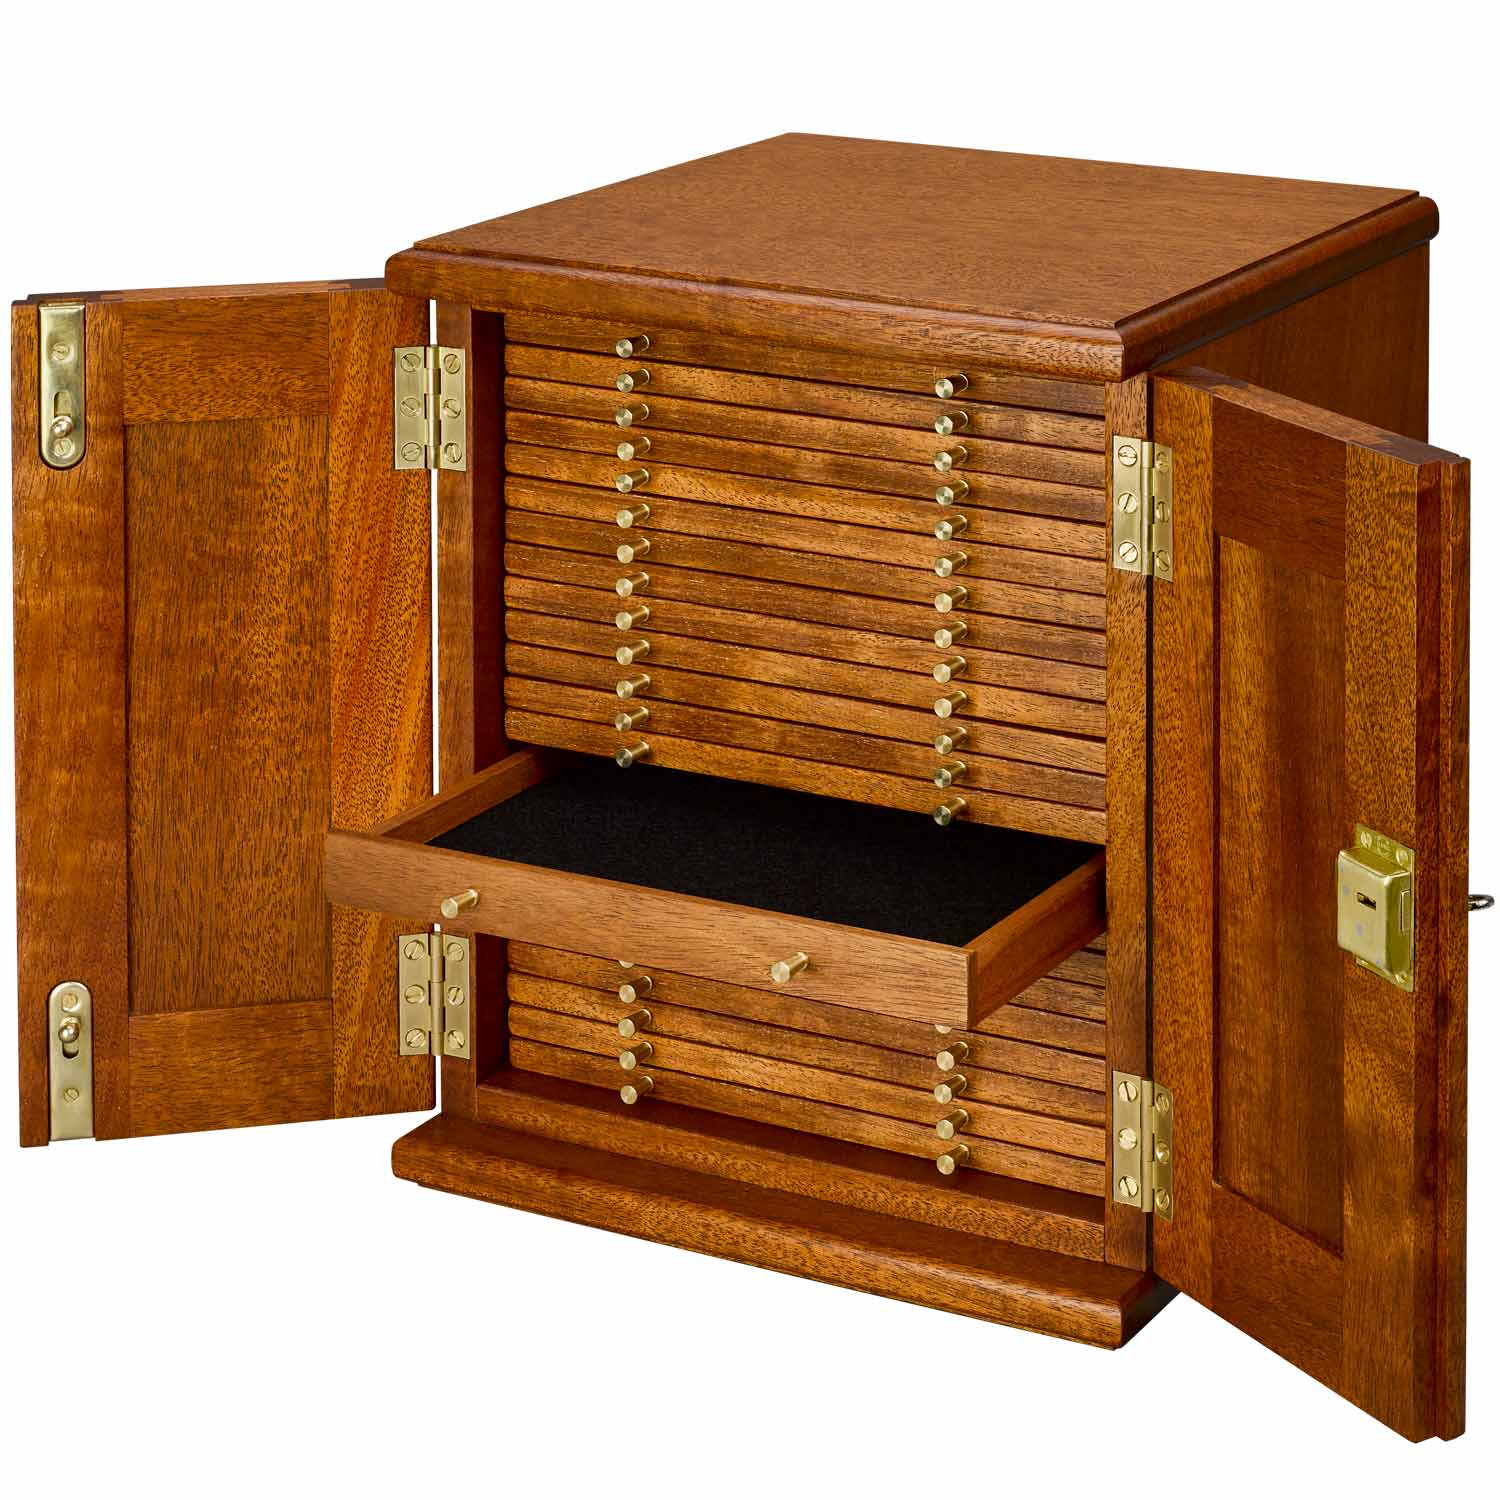 Coin Cabinet 21 Trays with Mixed Holes